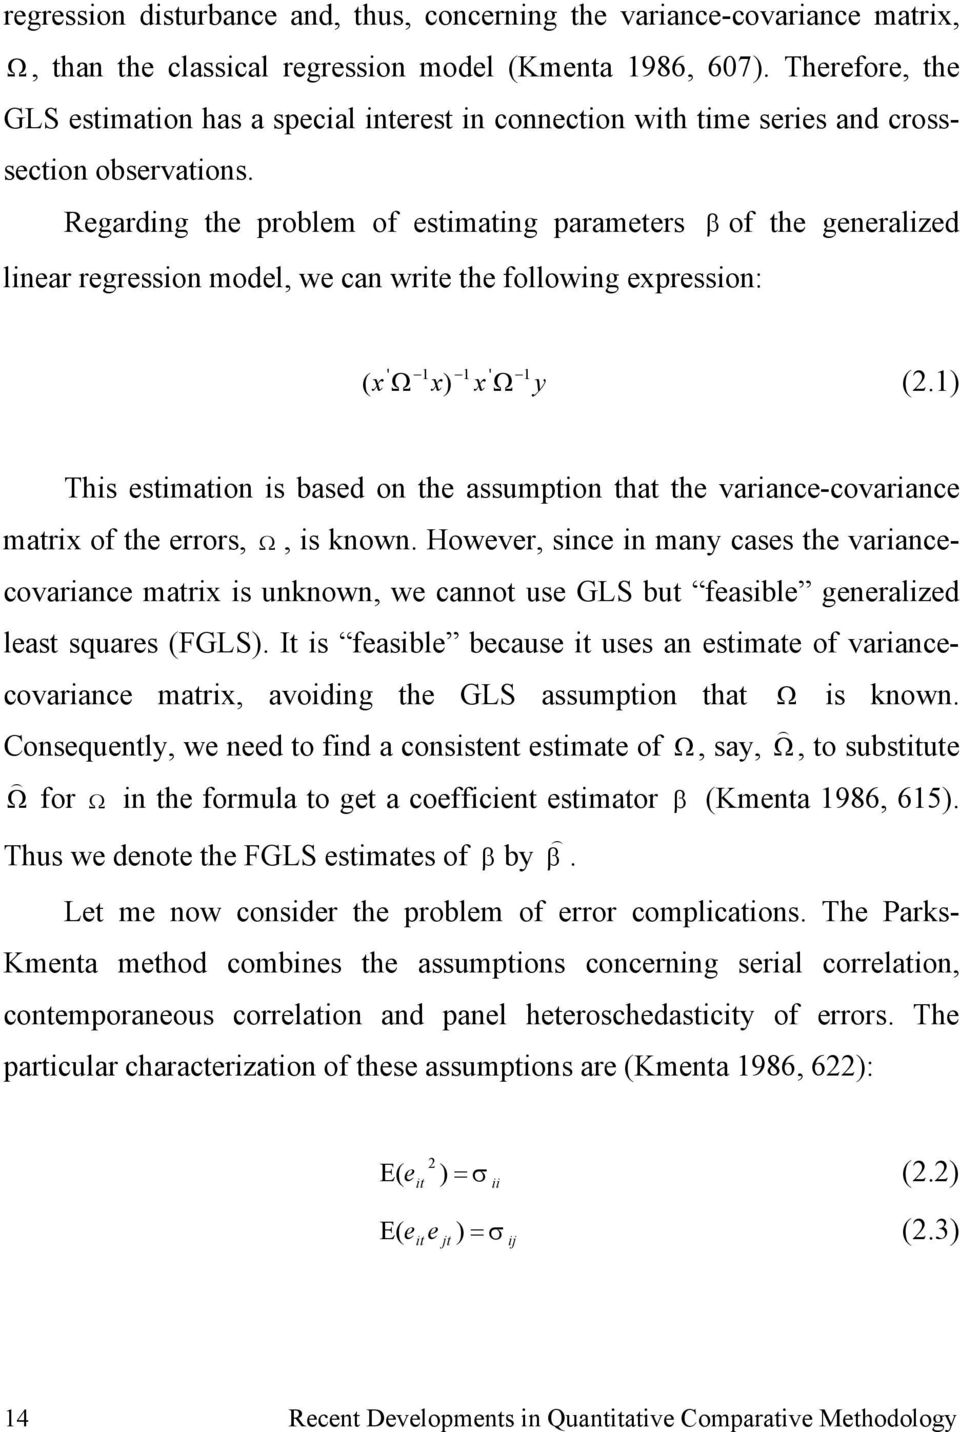 Regardng the problem of estmatng parameters β of the generalzed lnear regresson model, we can wrte the followng expresson: ' 1 1 ' 1 ( x Ω x) x Ω y (2.